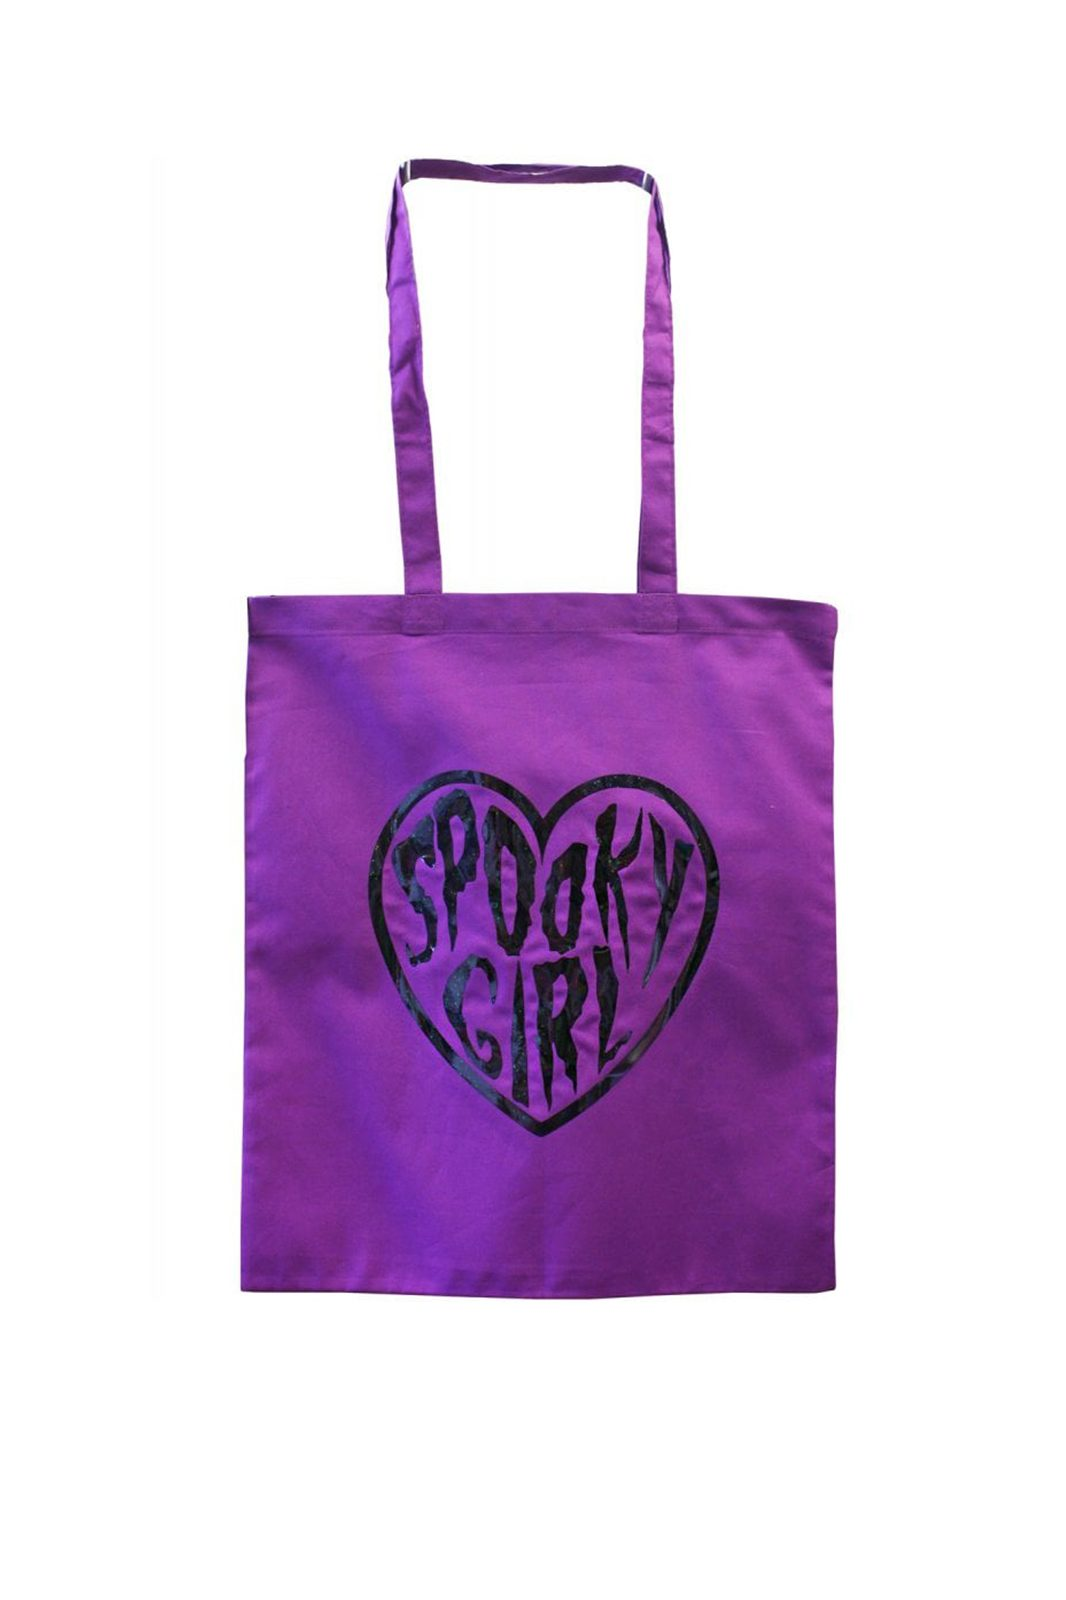 Spooky Girl Purple Tote Bag